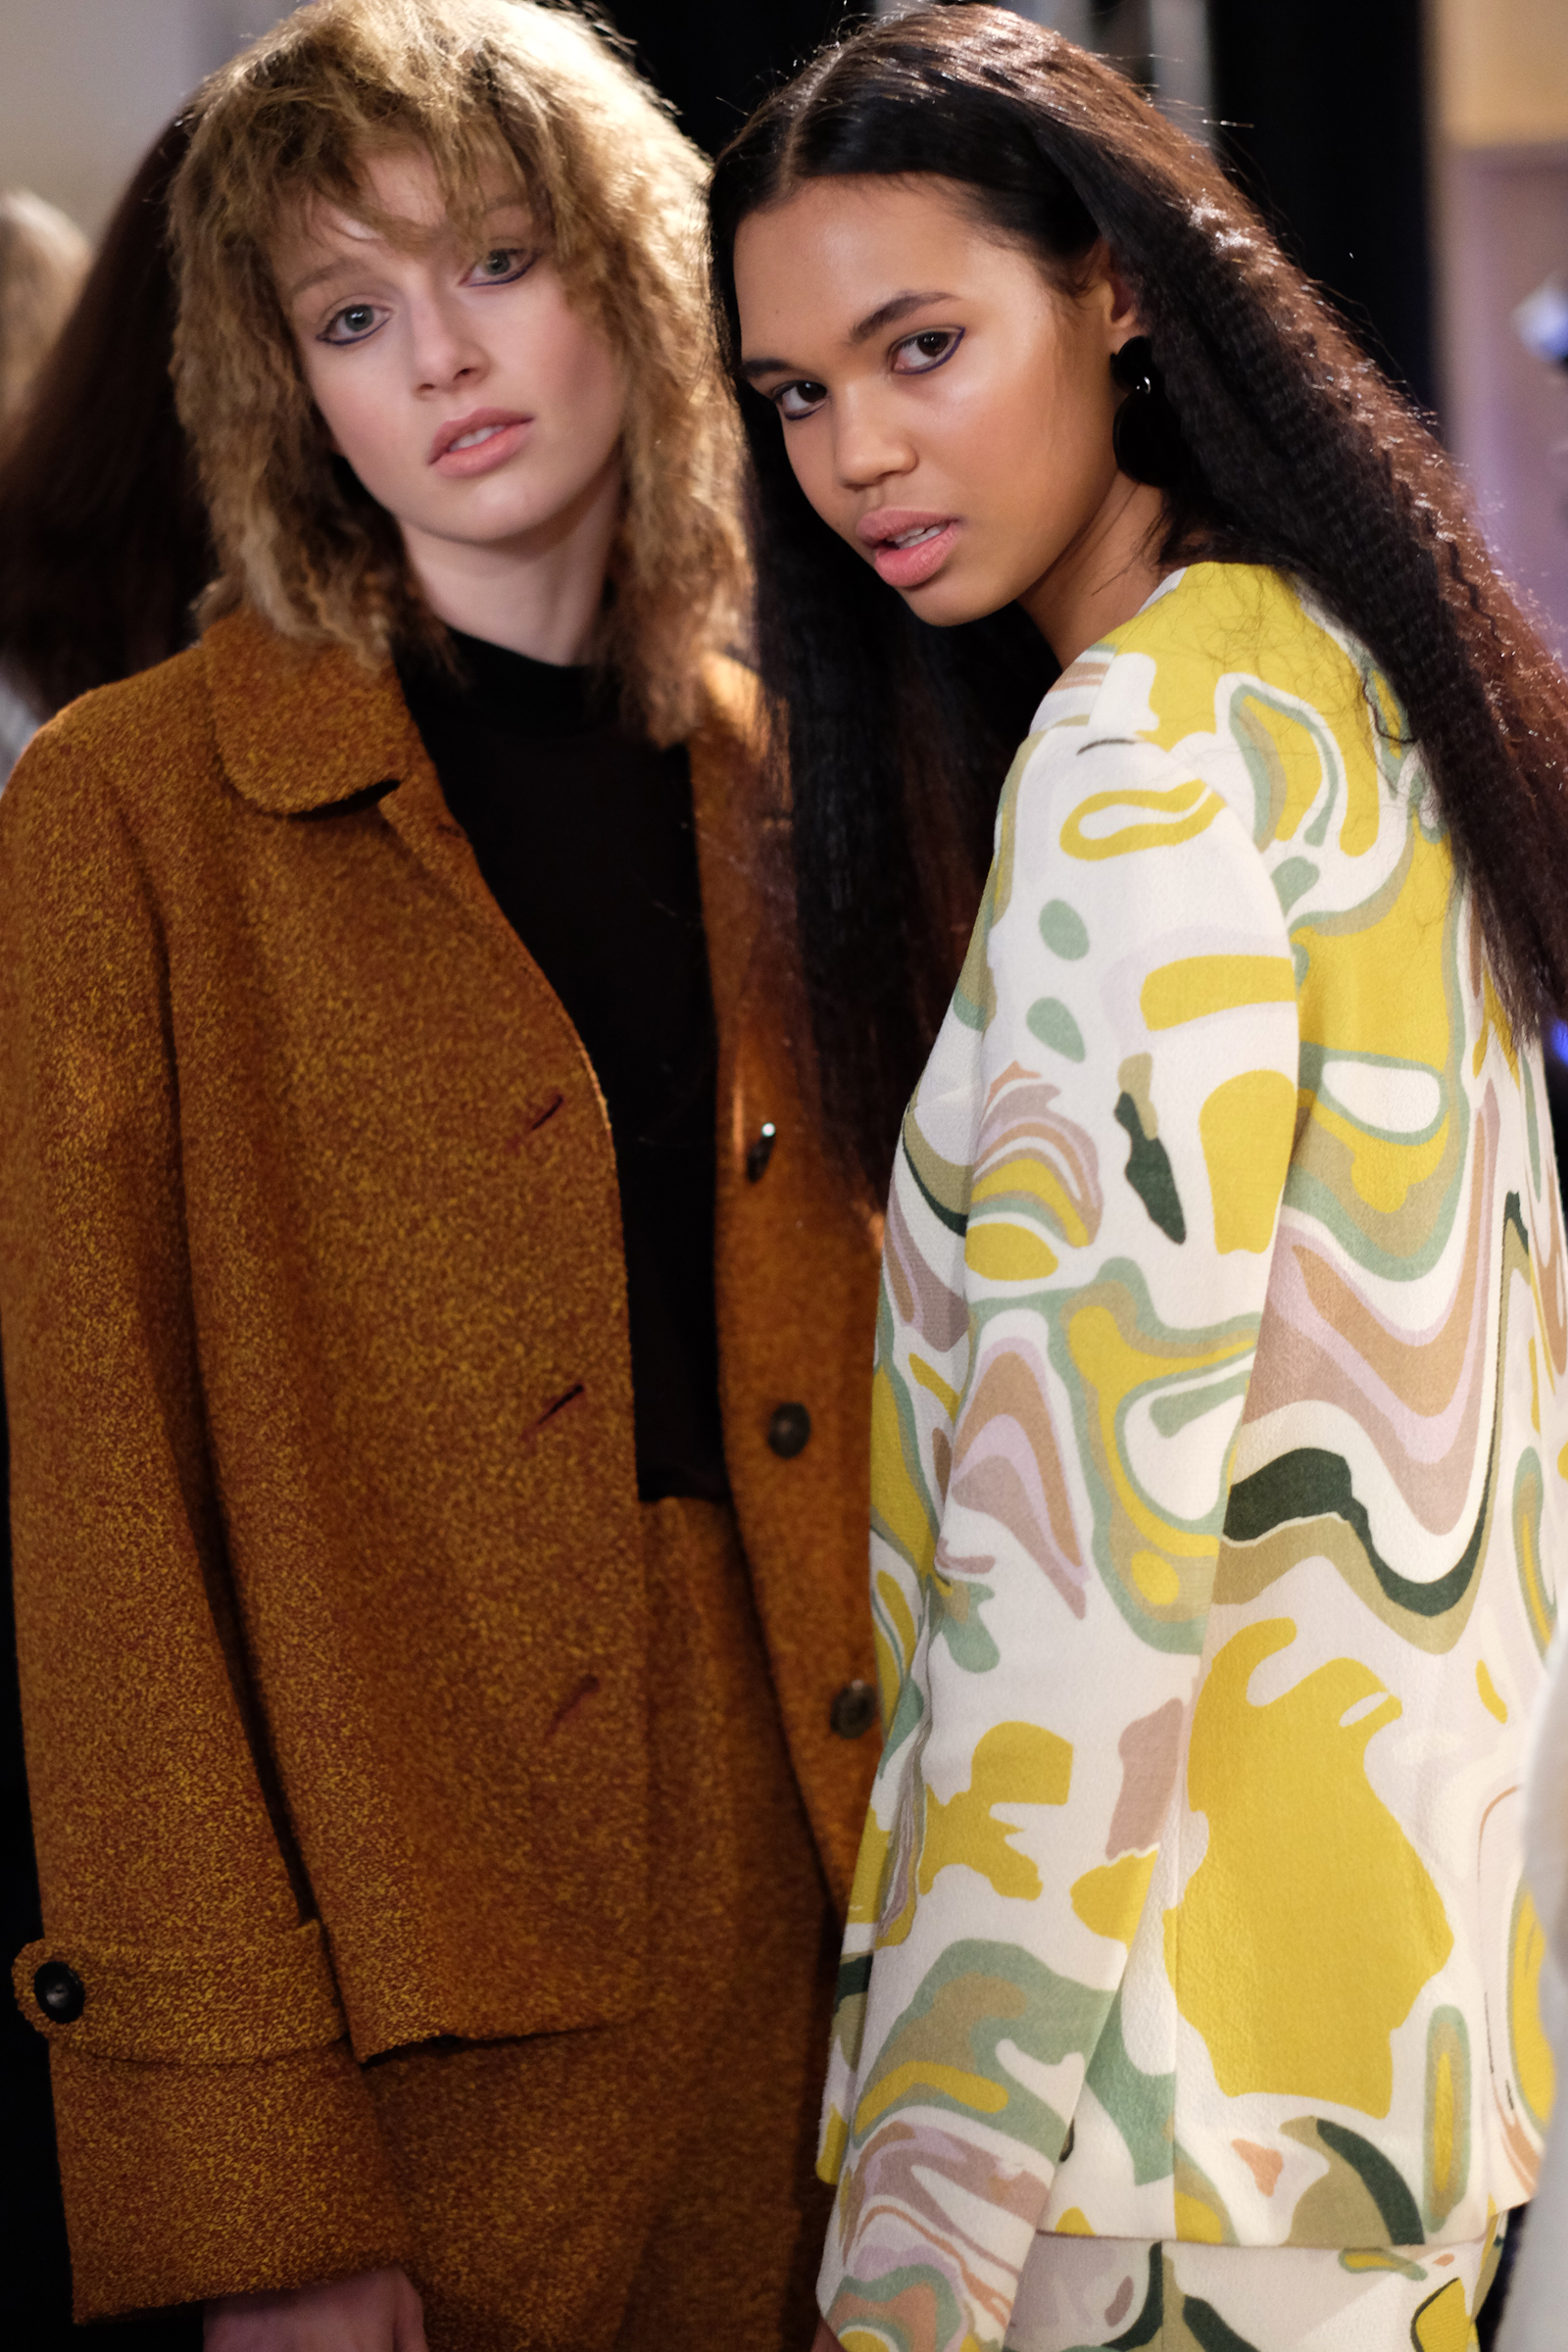 Tess Angel and Jordan backstage at Lucilla Gray's NZFW show | Chloe Hill Fashion Week Coverage 2016